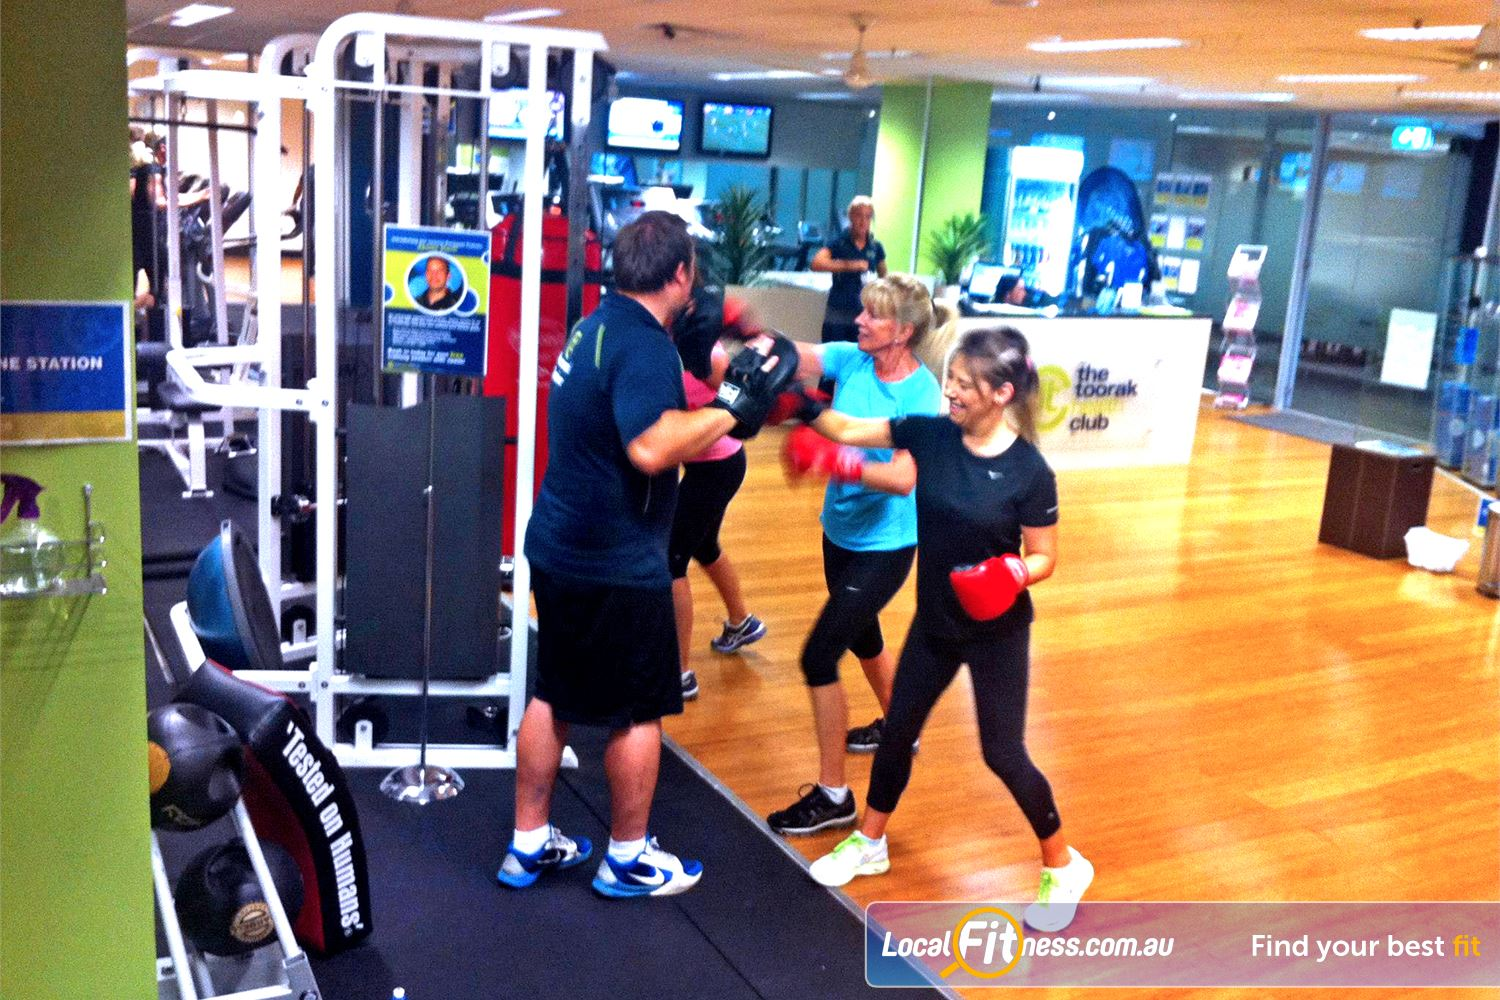 The Toorak Health Club Near Malvern North Our Toorak gym is like having your own gym at home.